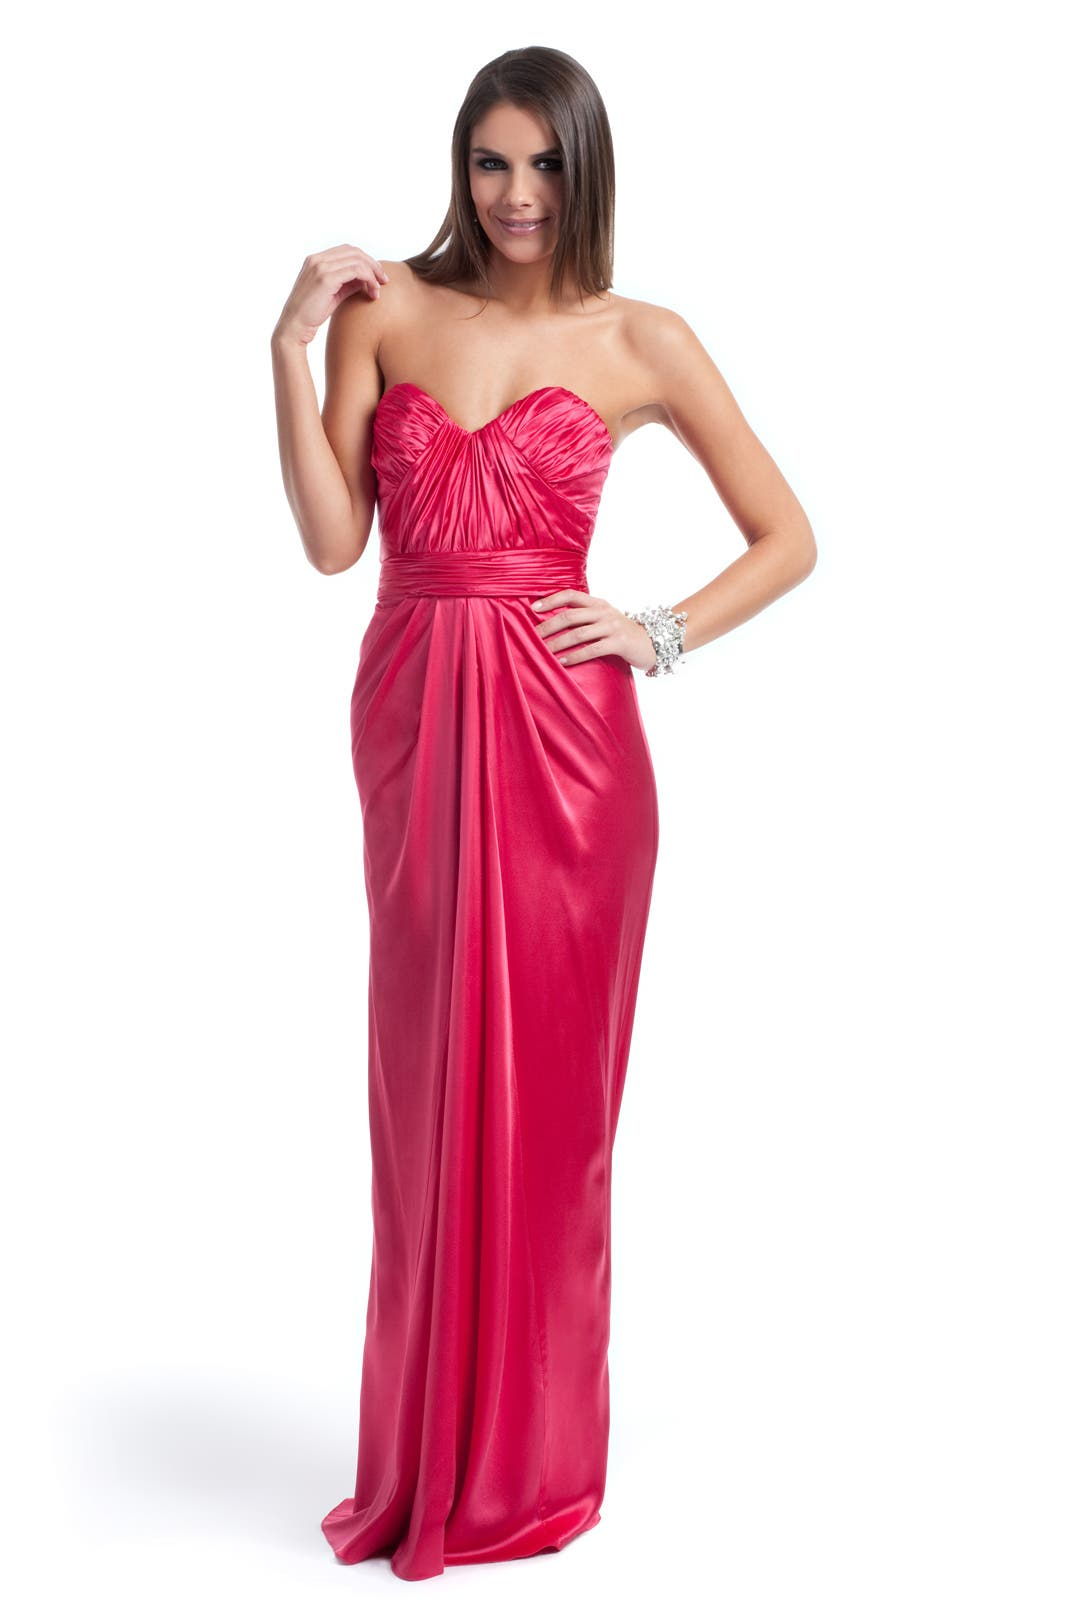 Lady of Love Gown by Badgley Mischka